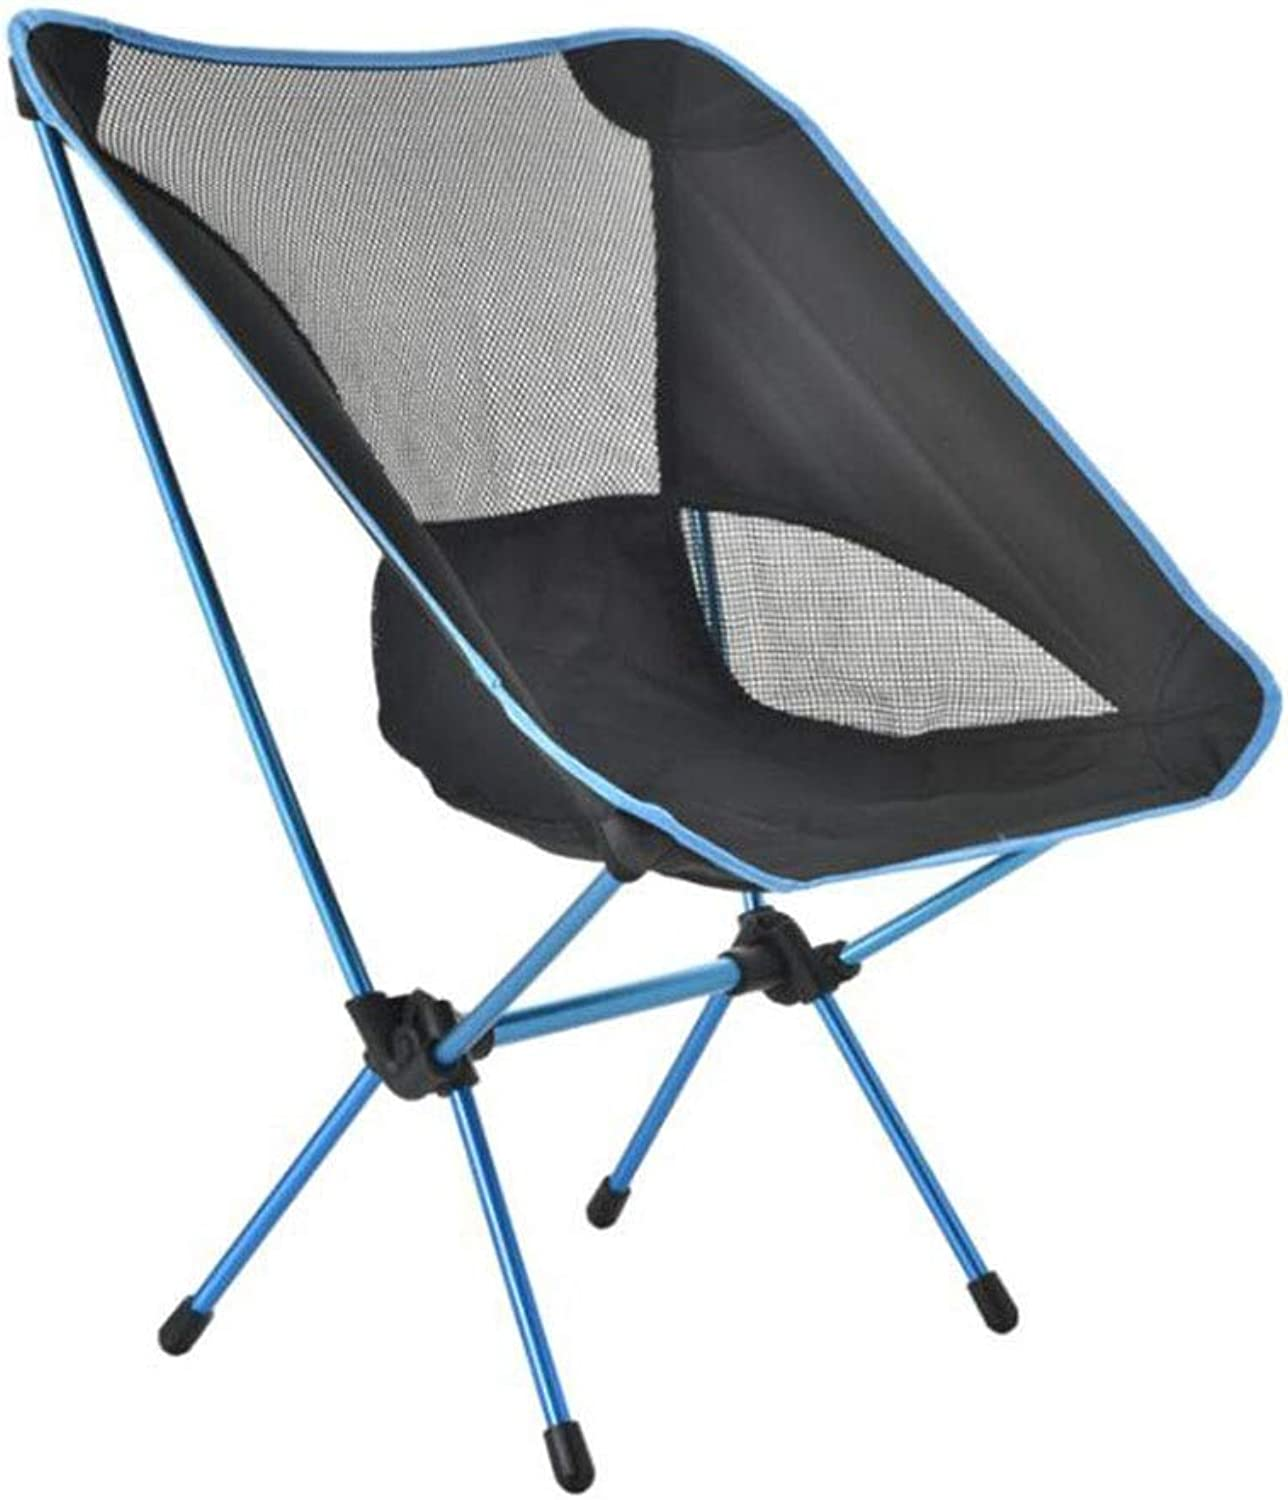 Outdoor Folding Chair Aluminum Casual Ultra Light Portable Beach Fishing Seaside Indoor and Outdoor Camping Picnic (color   A)